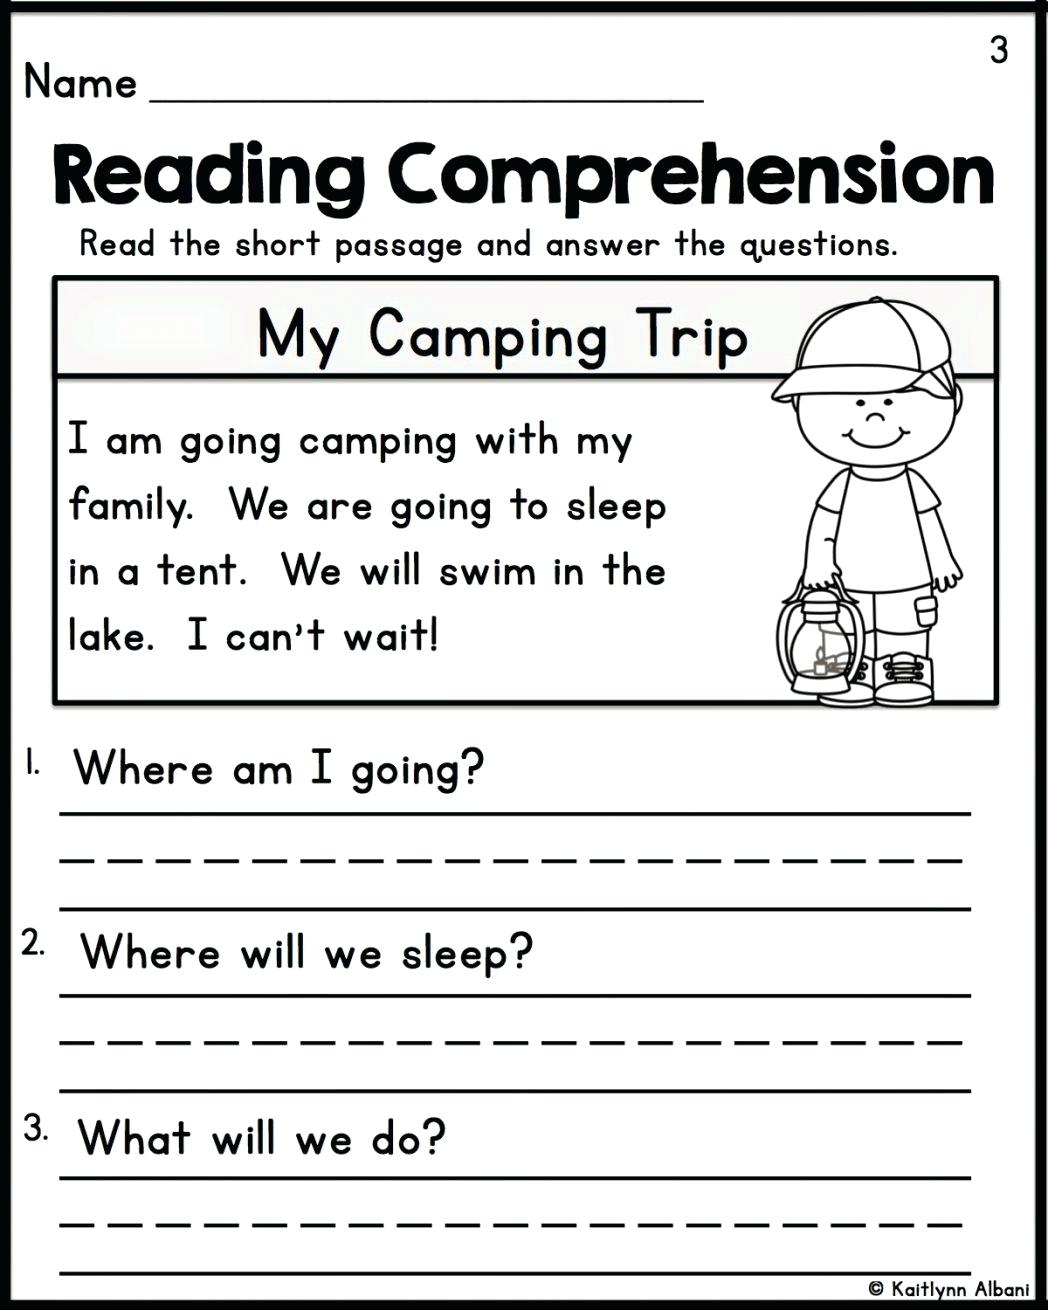 Worksheets Comprehension Worksheets For Grade 2